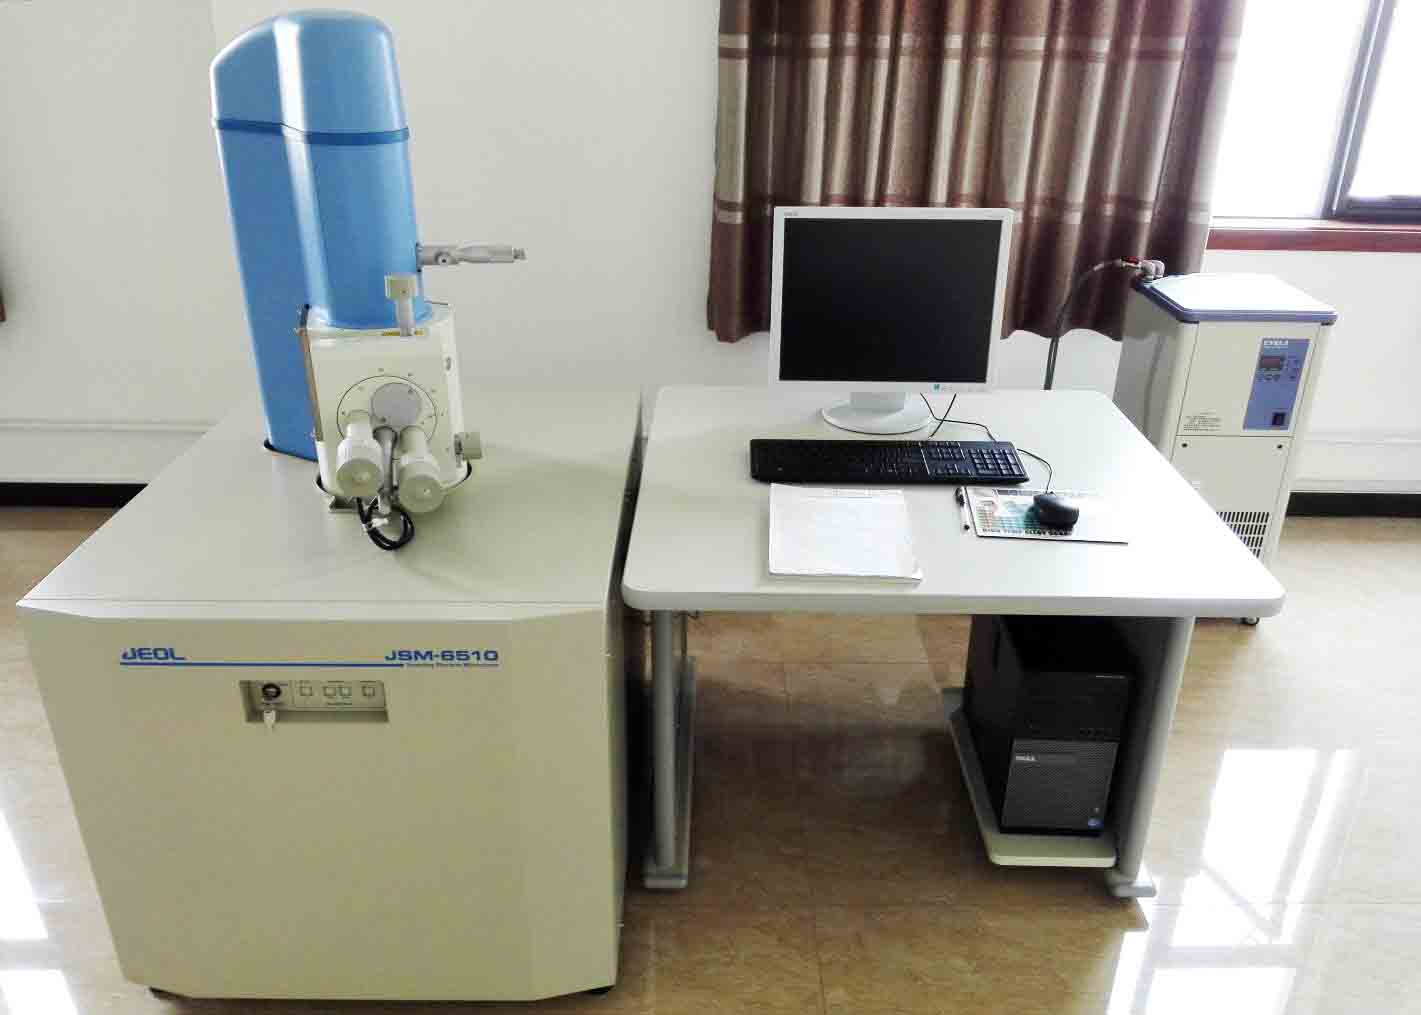 Scanning Electron Microscope for Quality control